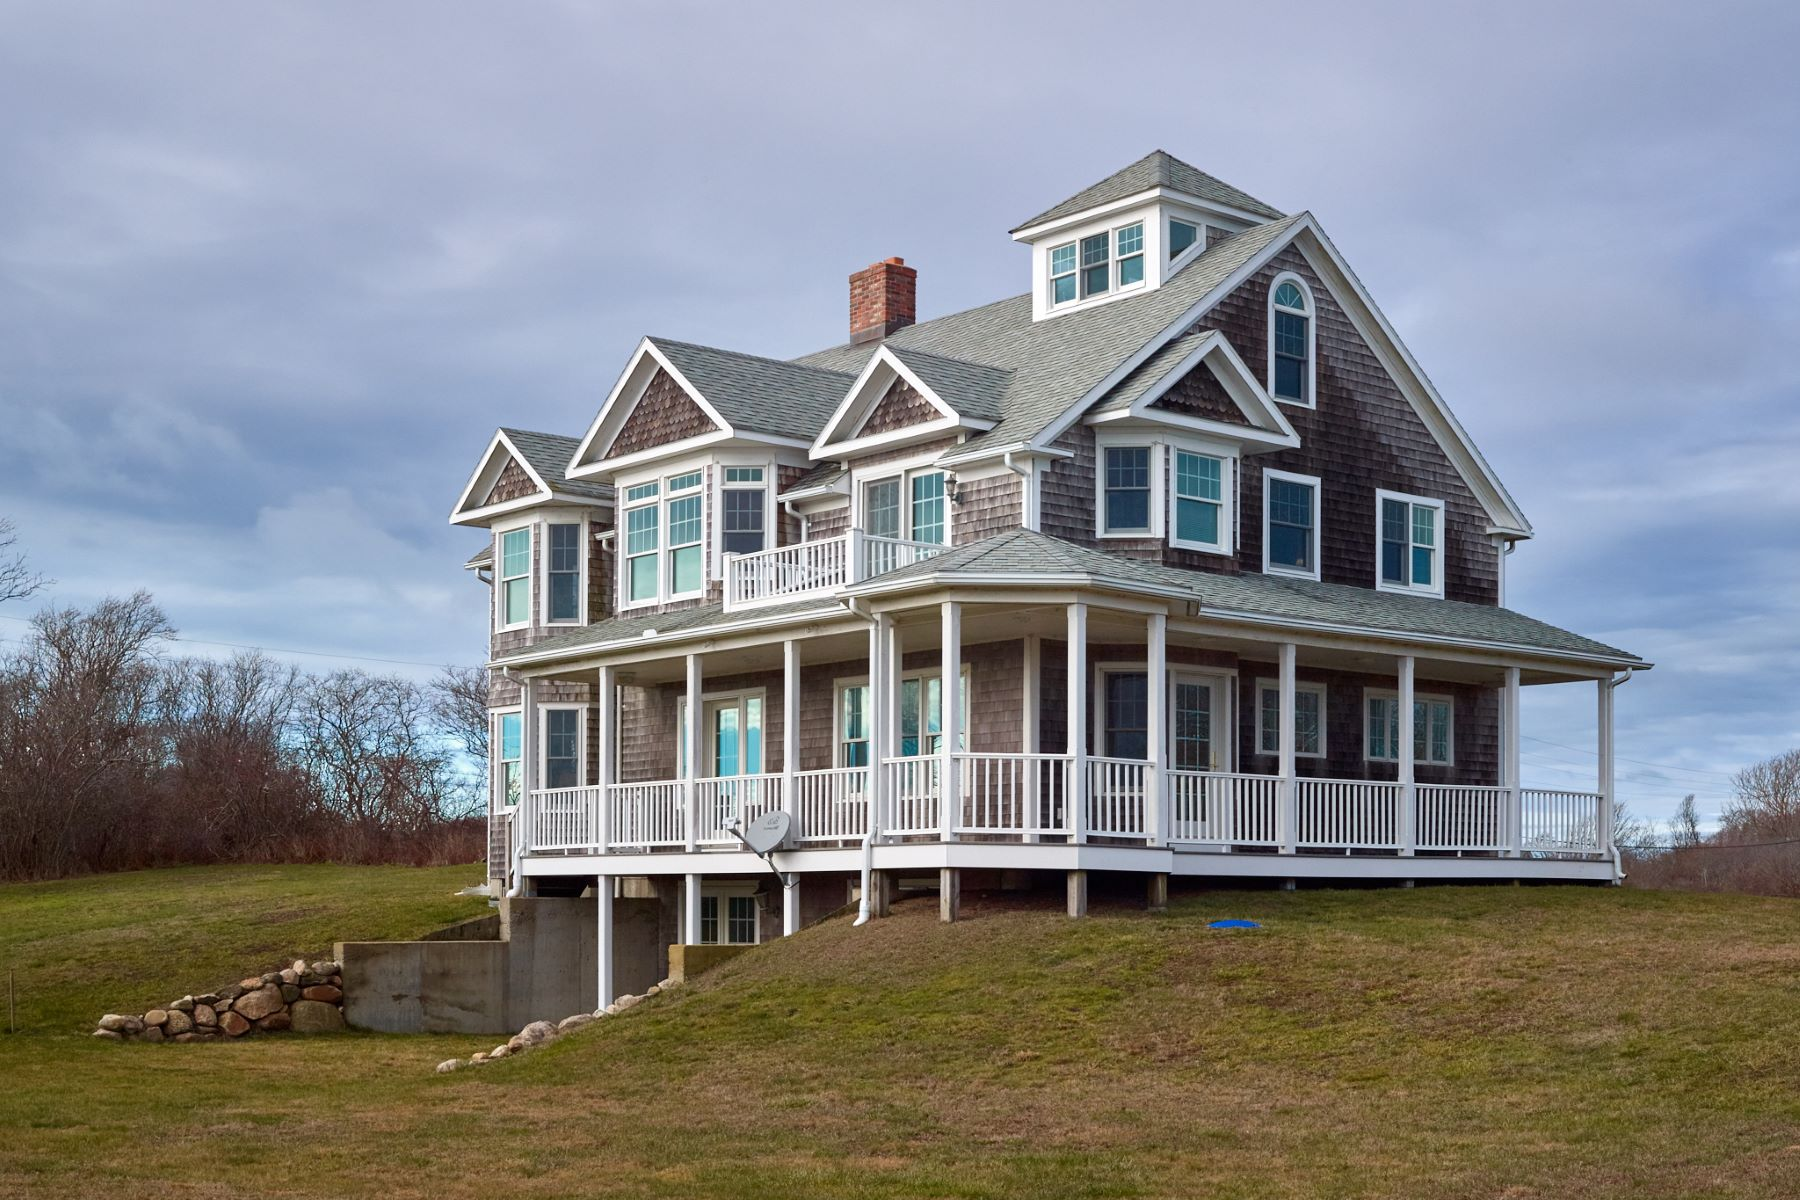 Single Family Home for Sale at Mohegan Cottage 1671 Mohegan Trail, Block Island, Rhode Island, 02807 United States